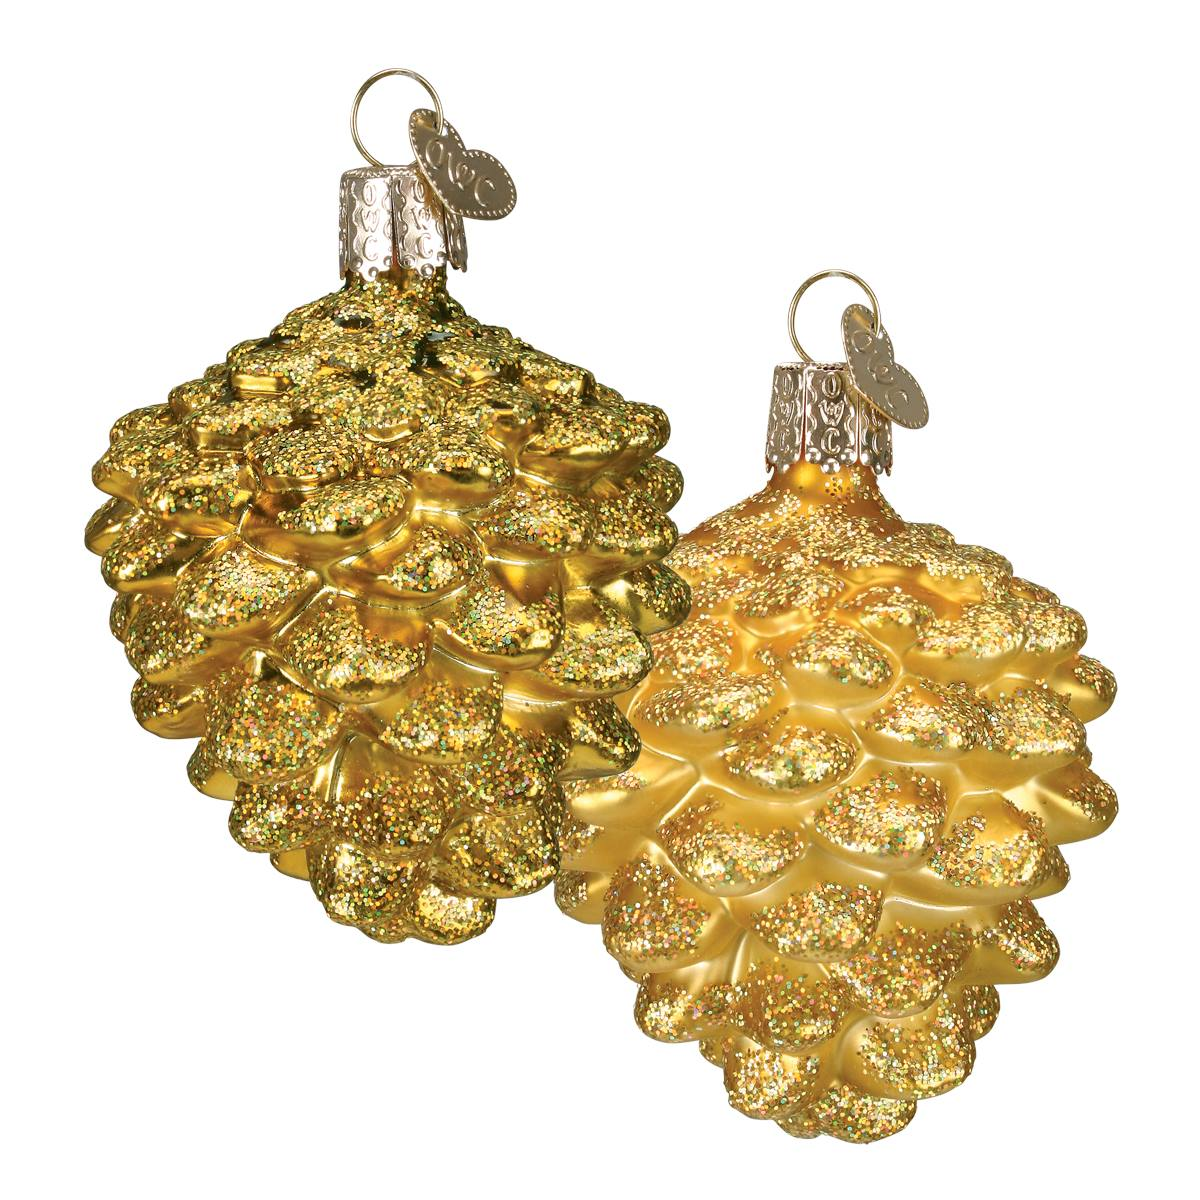 Silver gold themed ornaments traditions for Small gold christmas ornaments